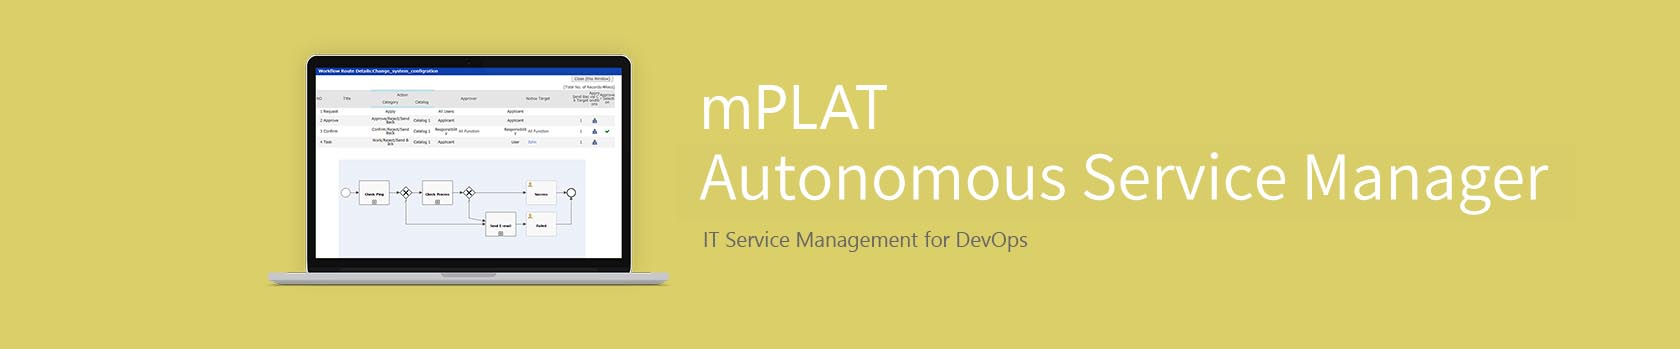 mPLAT Service Manager